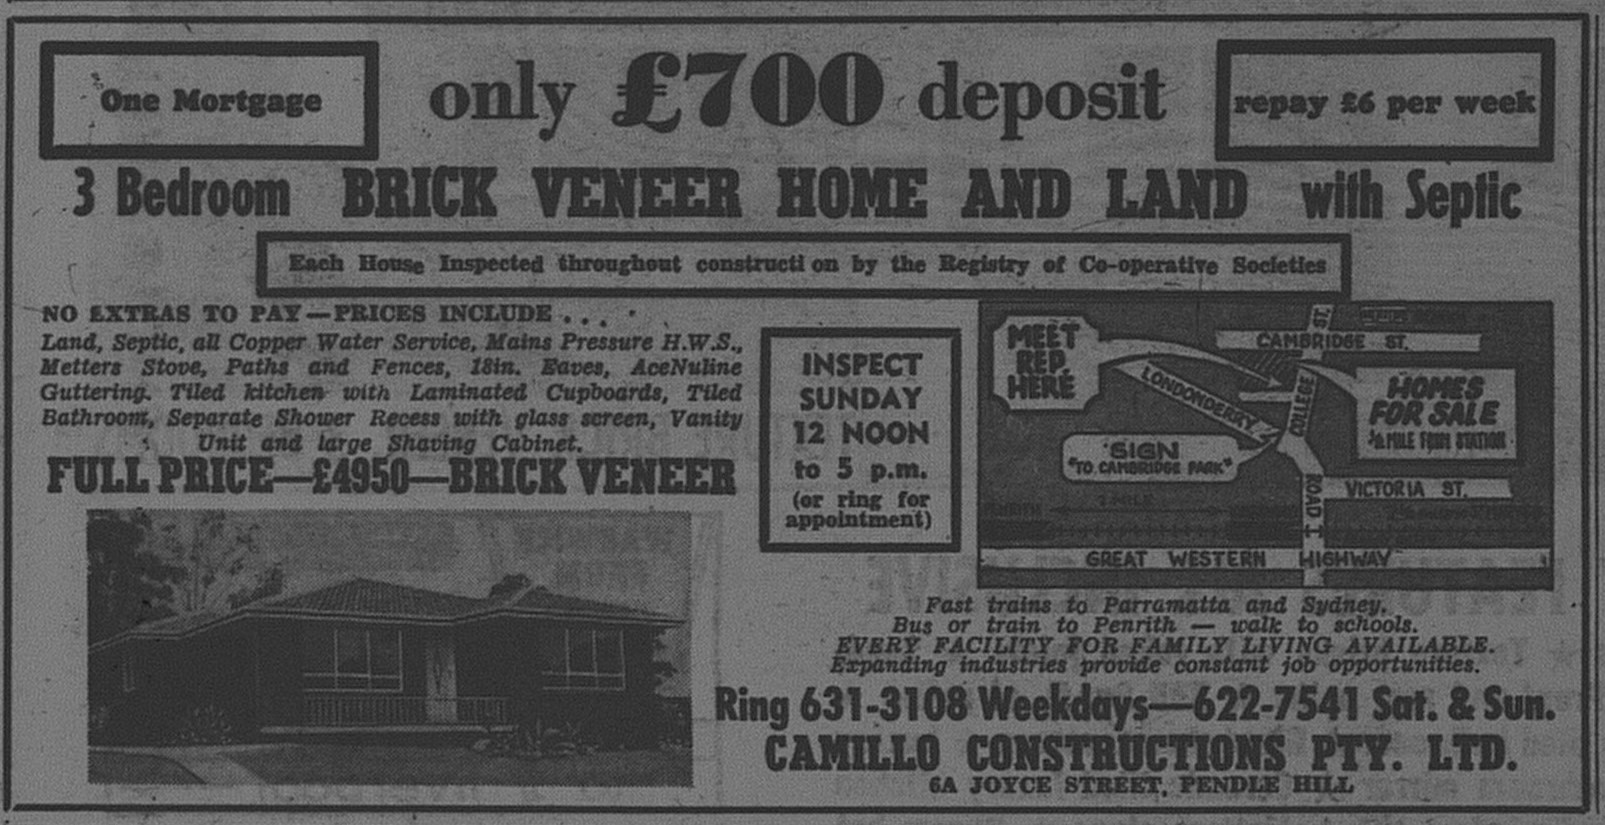 Camillo Construction Homes Ad May 6 1967 daily telegraph 30